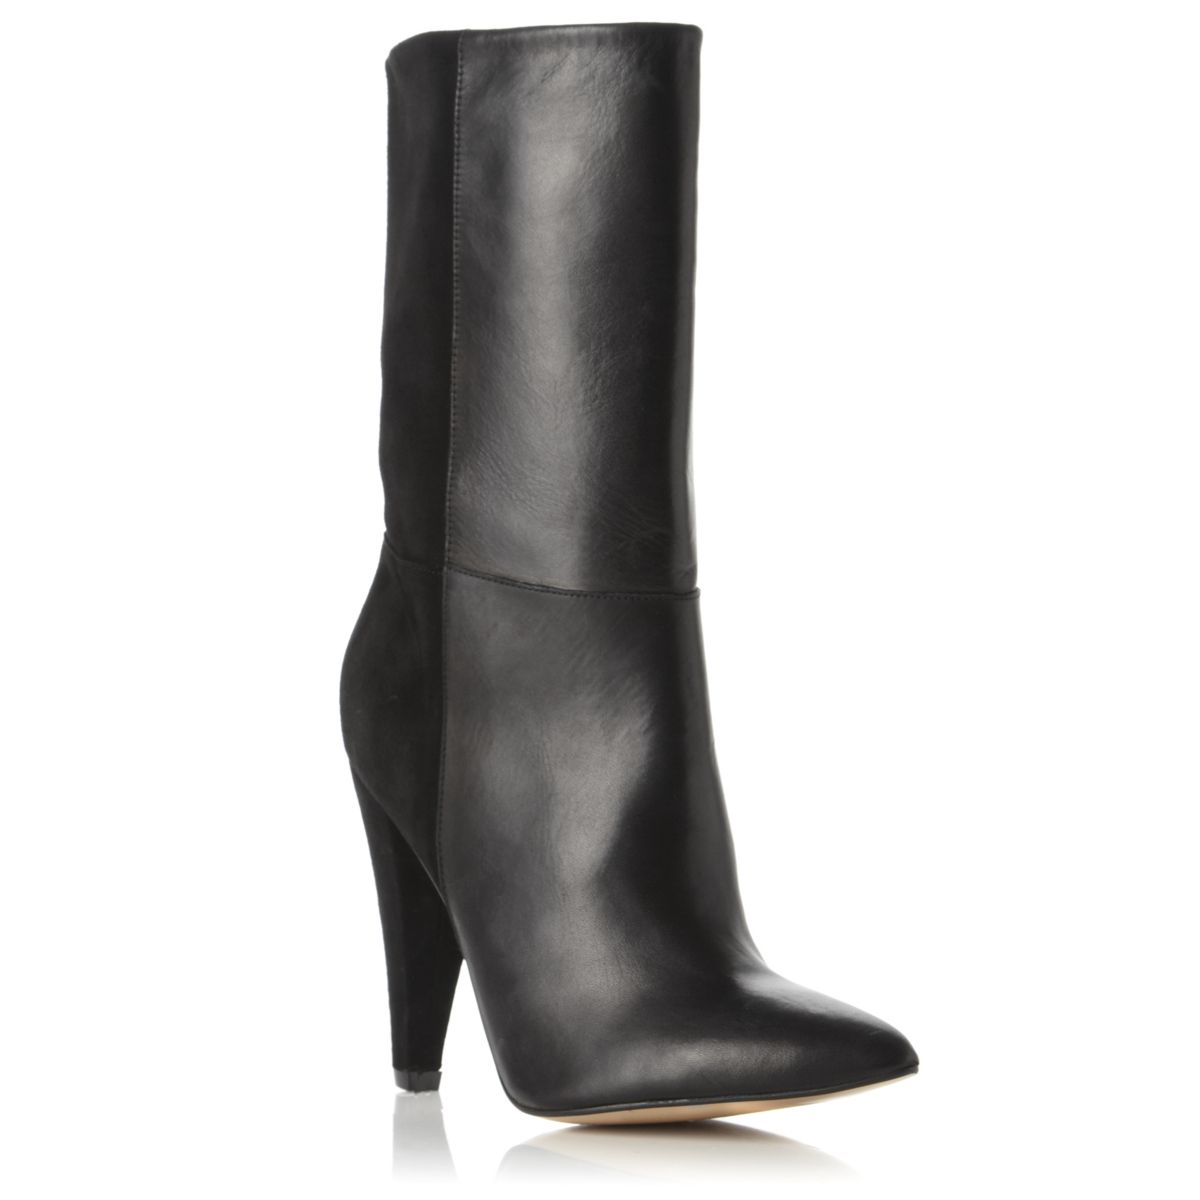 DUNE-ROSE-WOMENS-BLACK-LADIES-LEATHER-POINTED-SUEDE-PANEL-CALF-BOOTS-SIZE-3-8